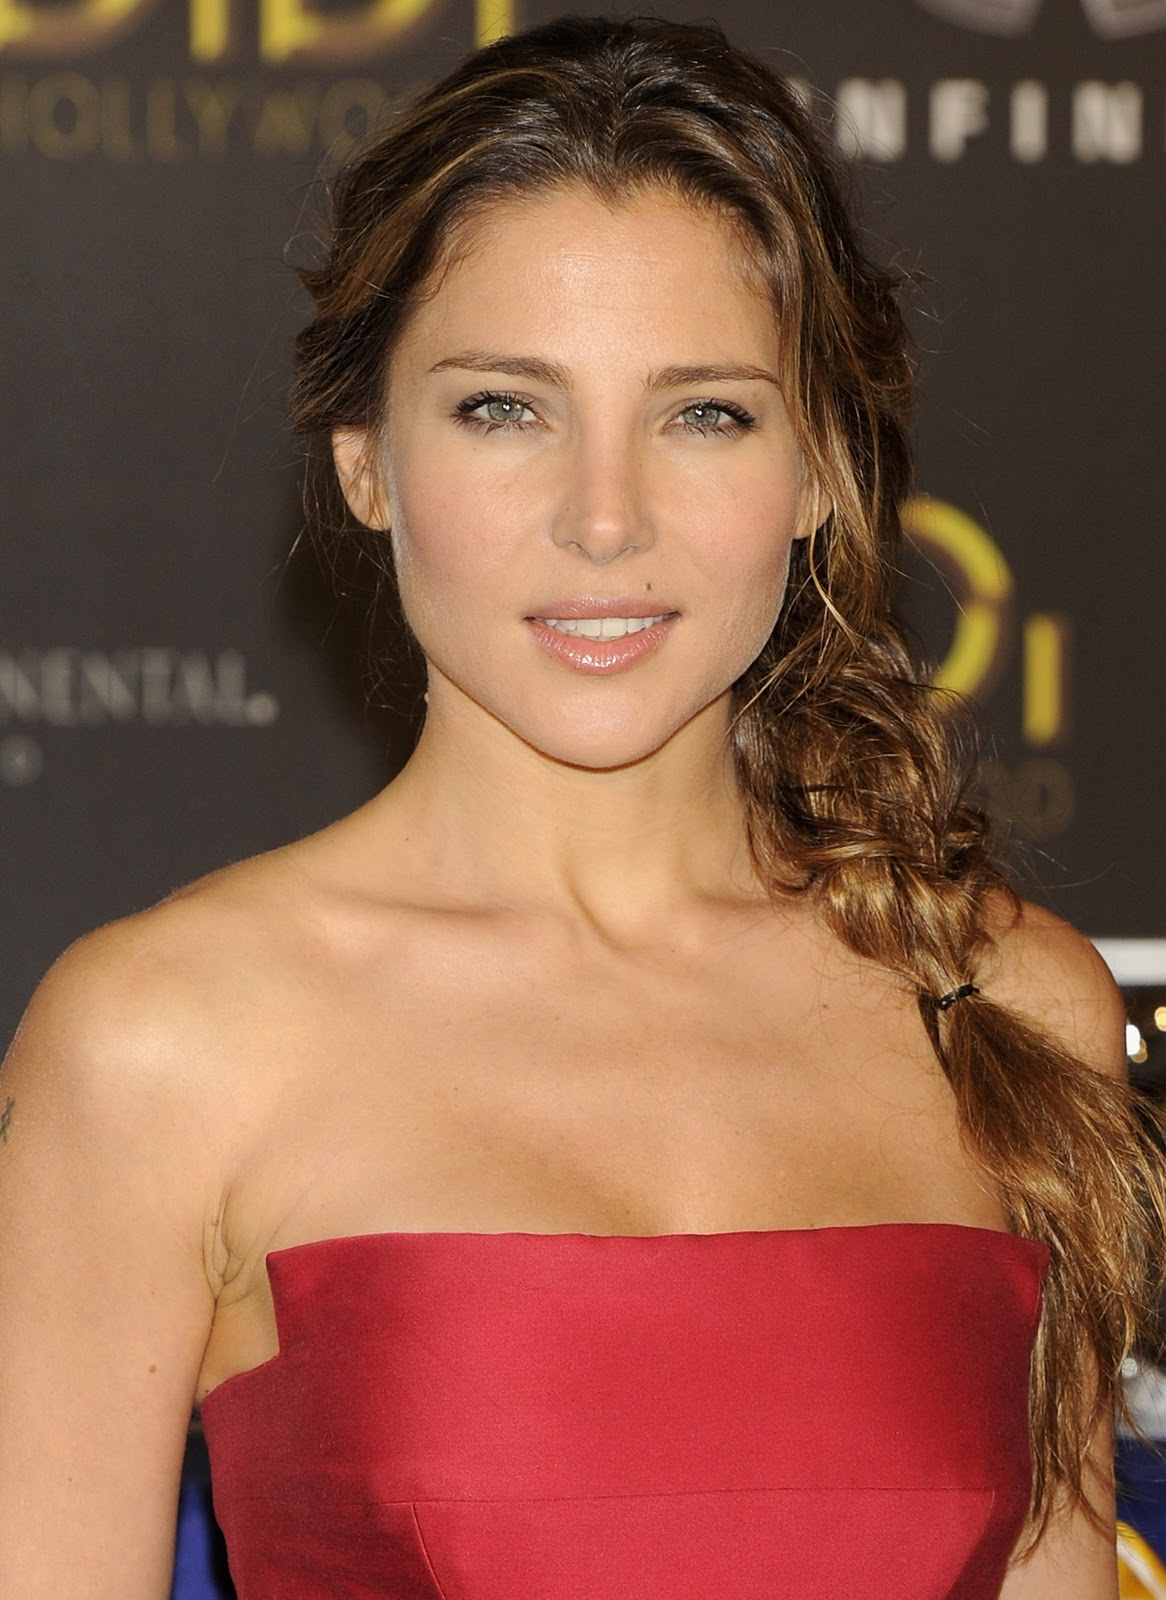 Actress Elsa Pataky Is Admired And Imitated By Many Elsa's Looks Are